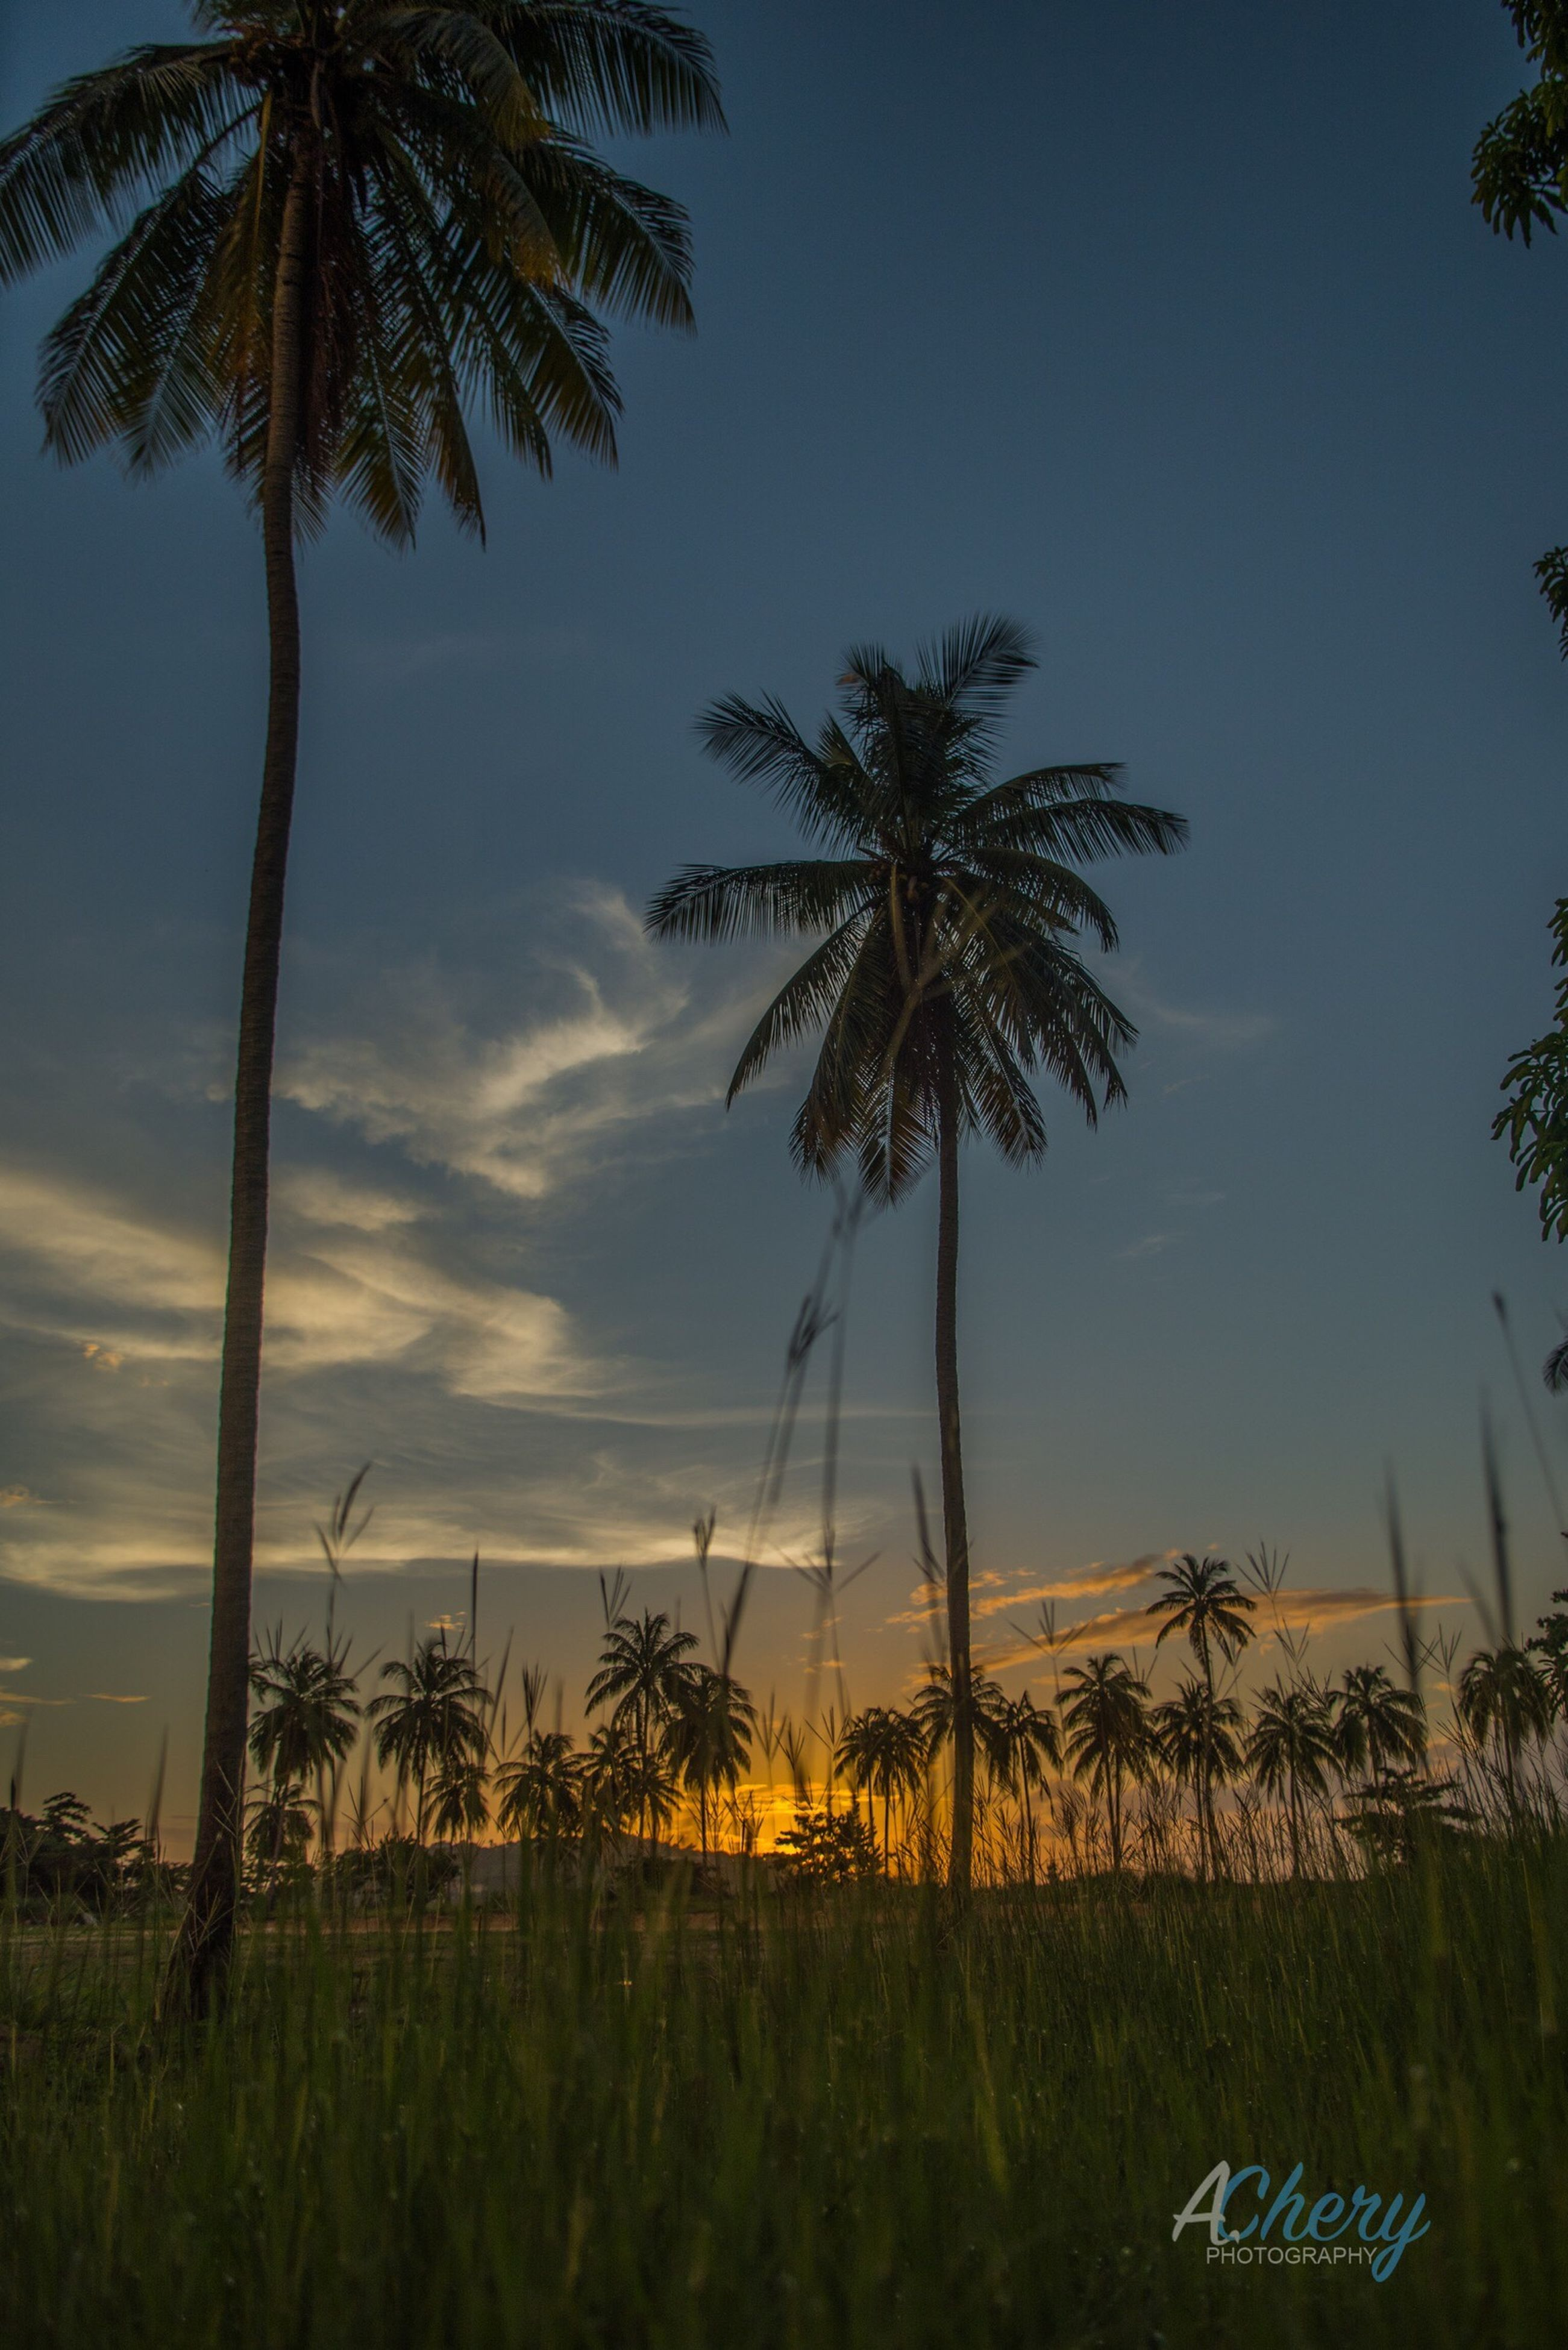 palm tree, tree, growth, sunset, tranquility, sky, nature, tranquil scene, scenics, beauty in nature, outdoors, no people, landscape, day